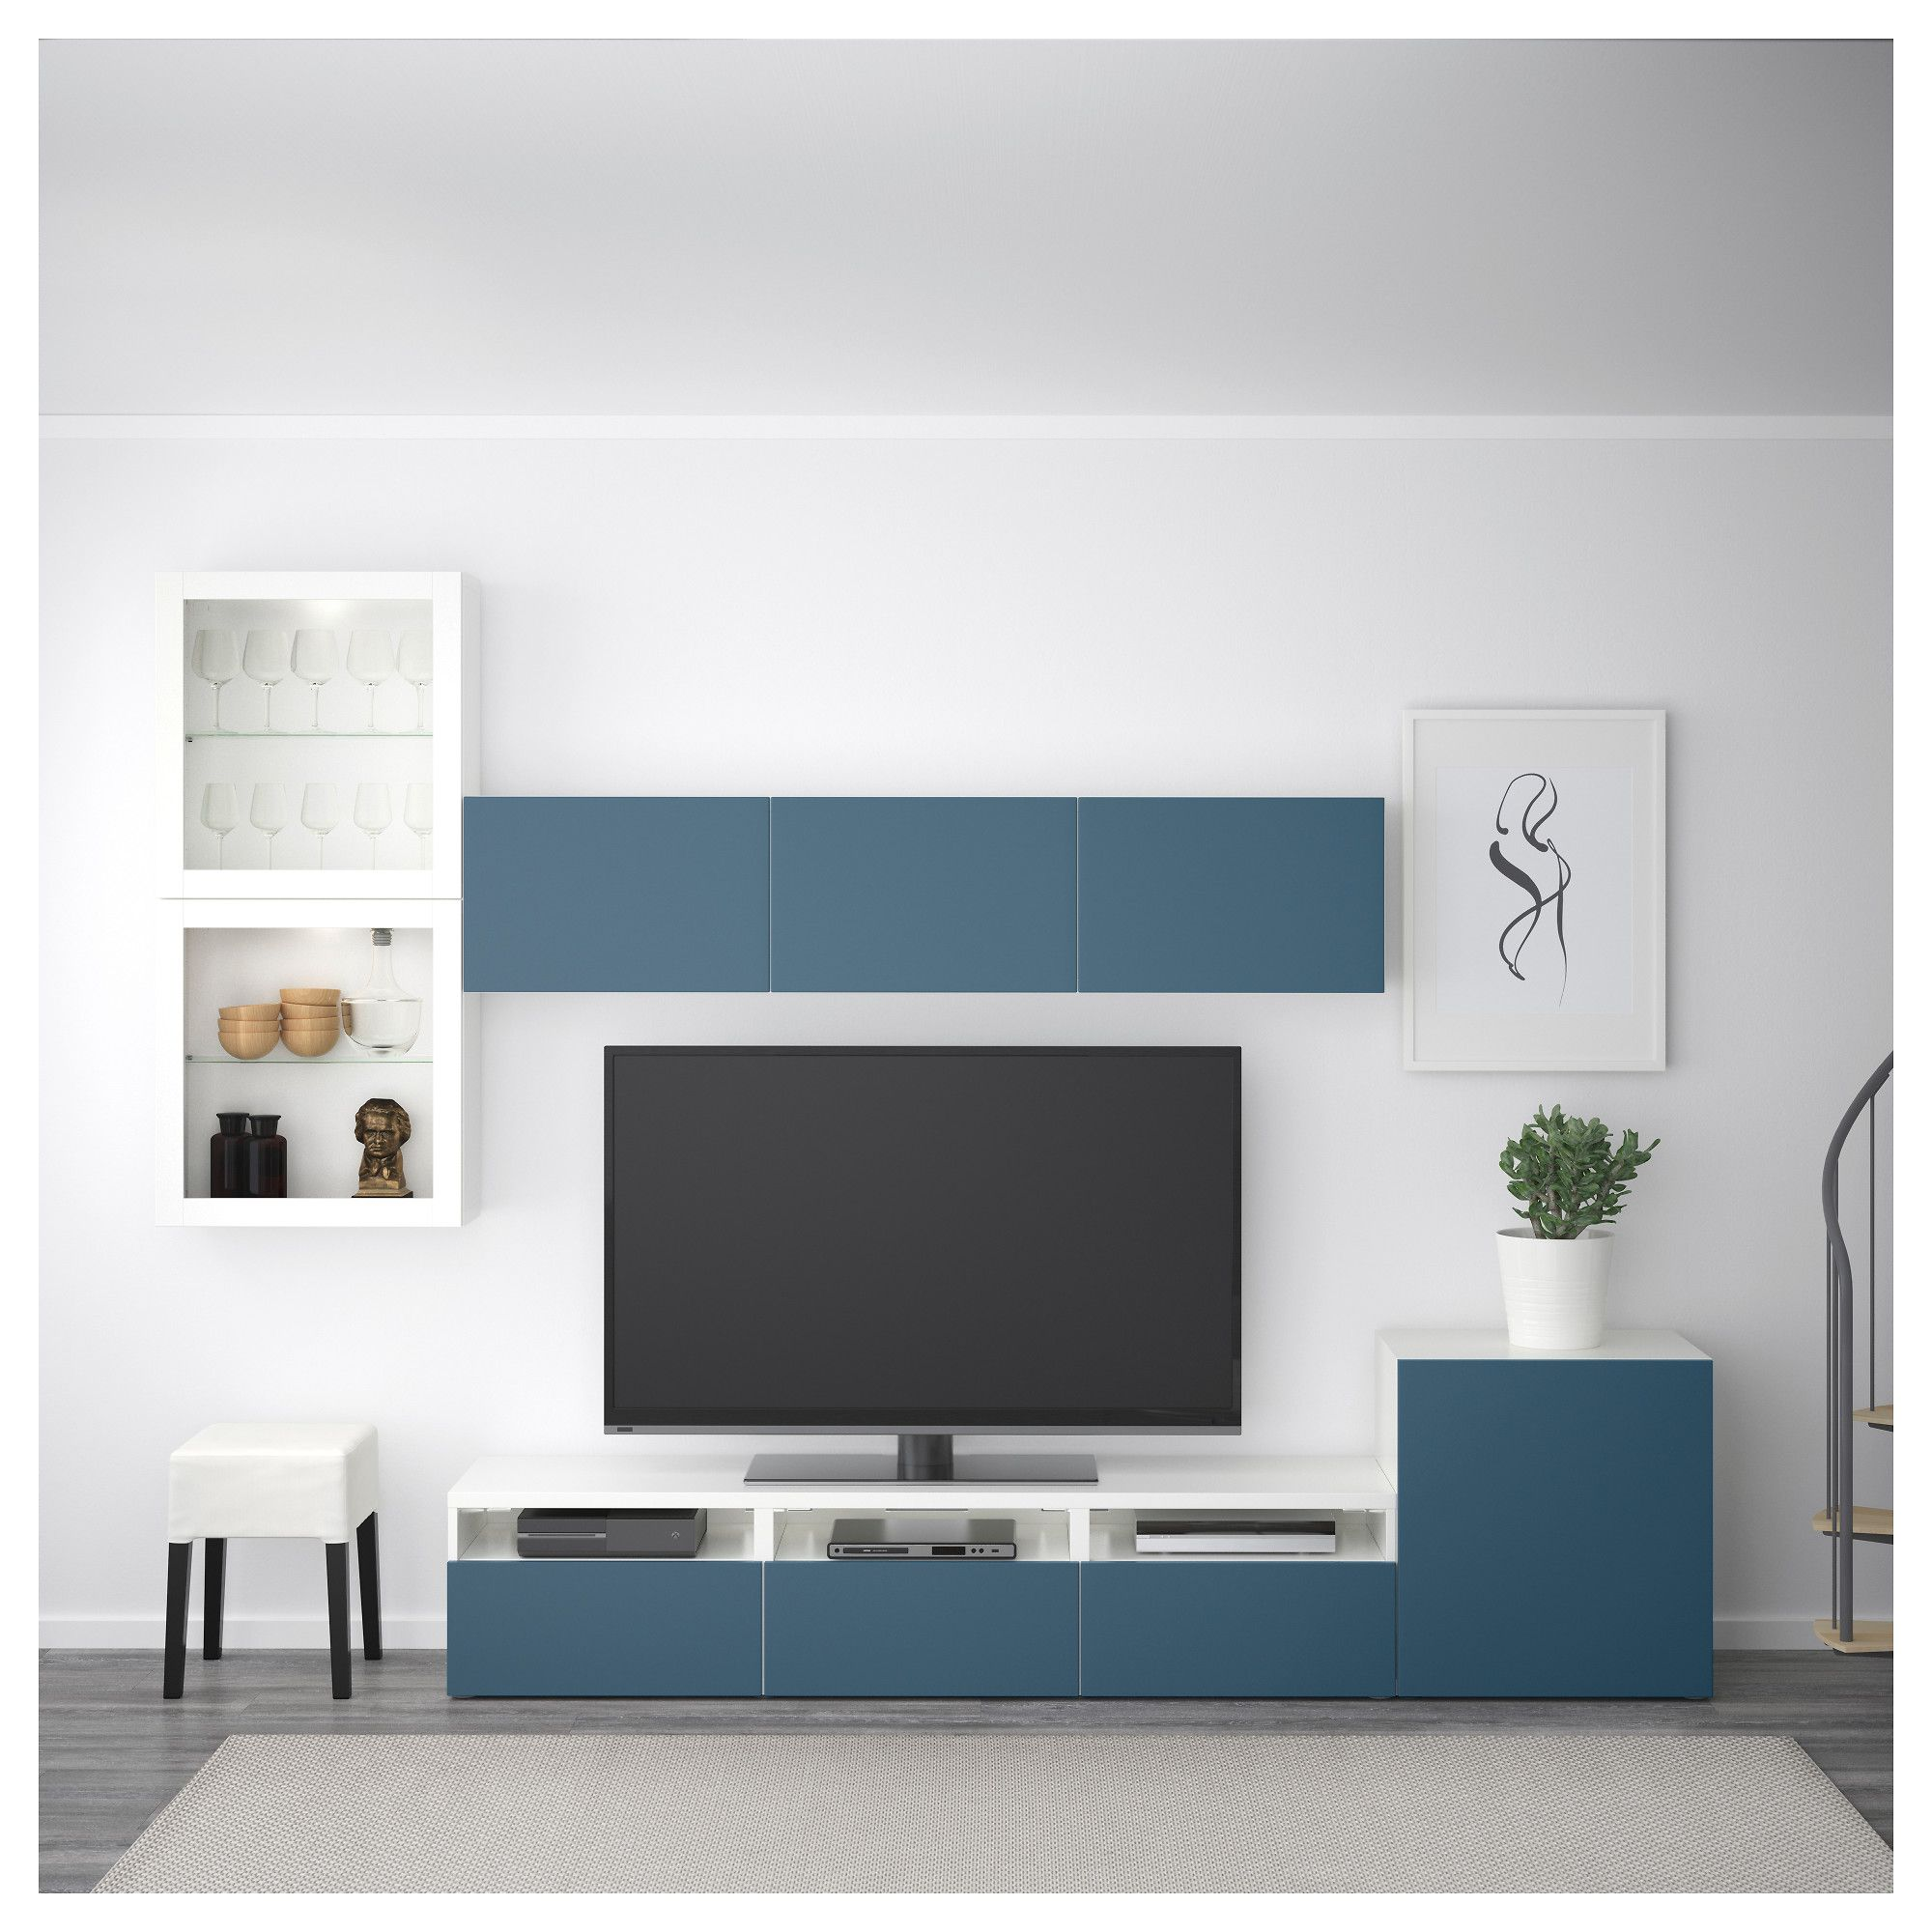 Furniture And Home Furnishings Tv Unit Decor Modern Tv Wall